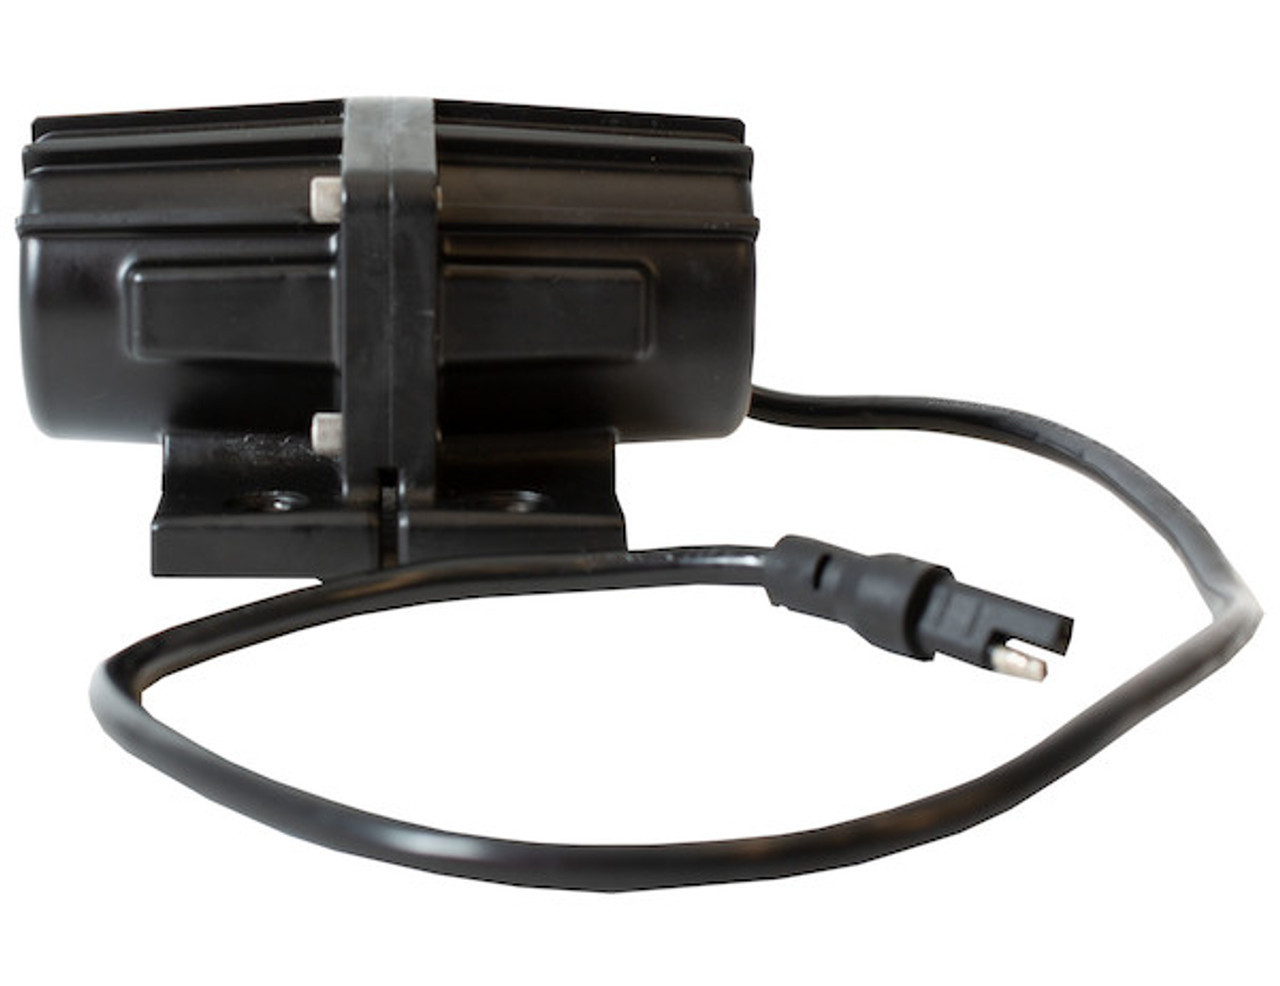 3008076 Buyers SaltDogg 80 Pound Vibrator For TGS Series Spreaders (Tailgate Spreaders) 1